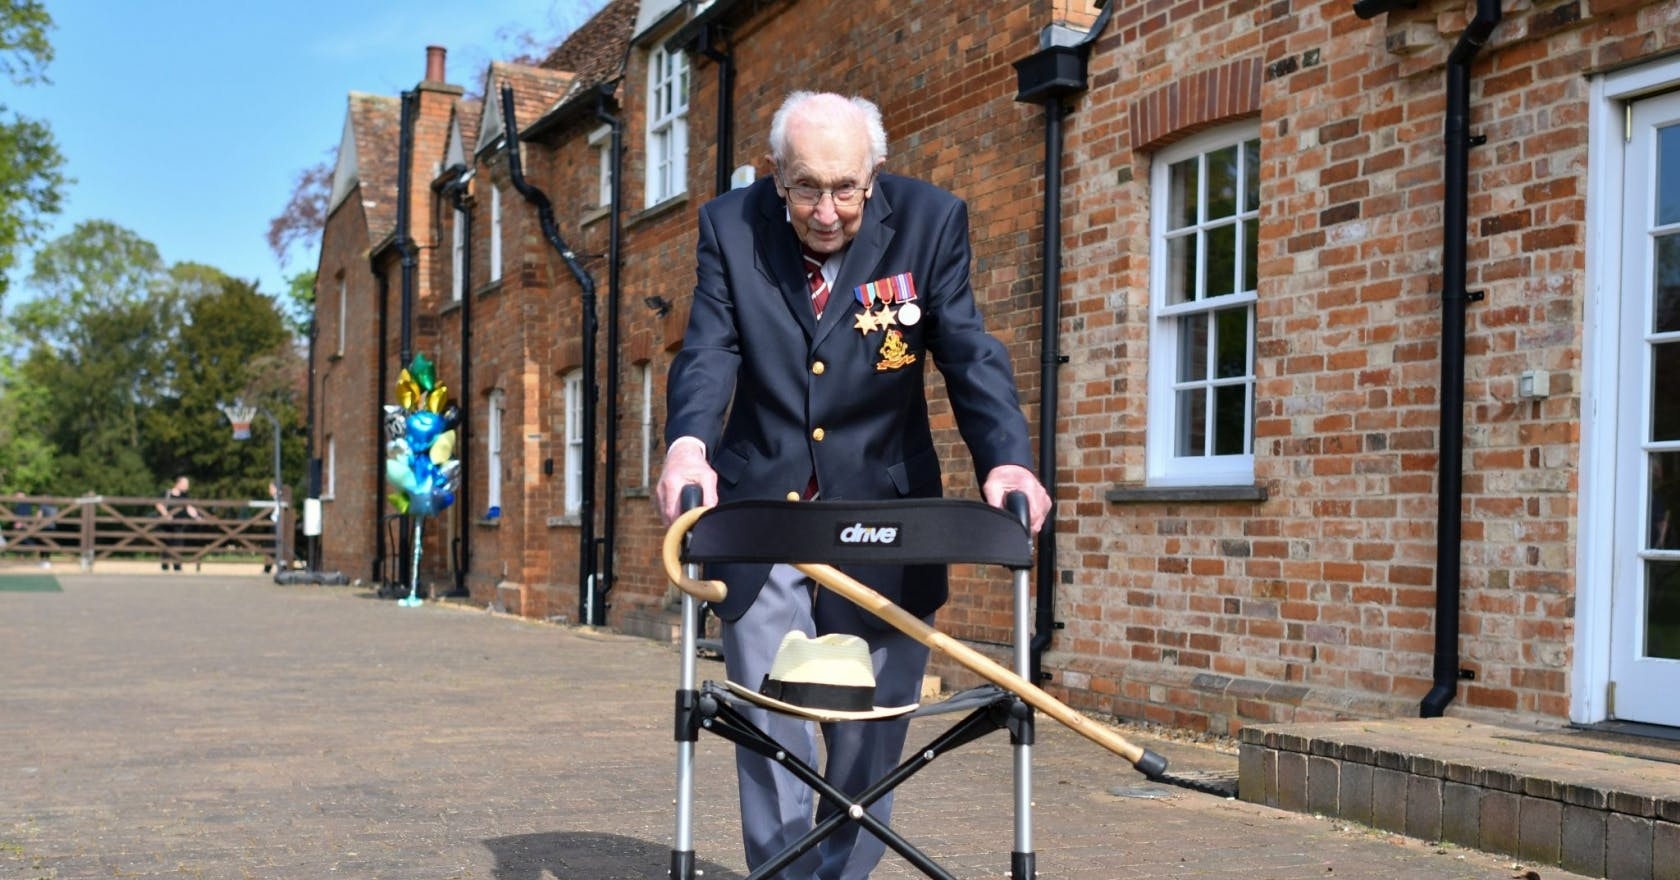 Captain Tom Moore turns 100 today, and he's been given a colonel title to celebrate